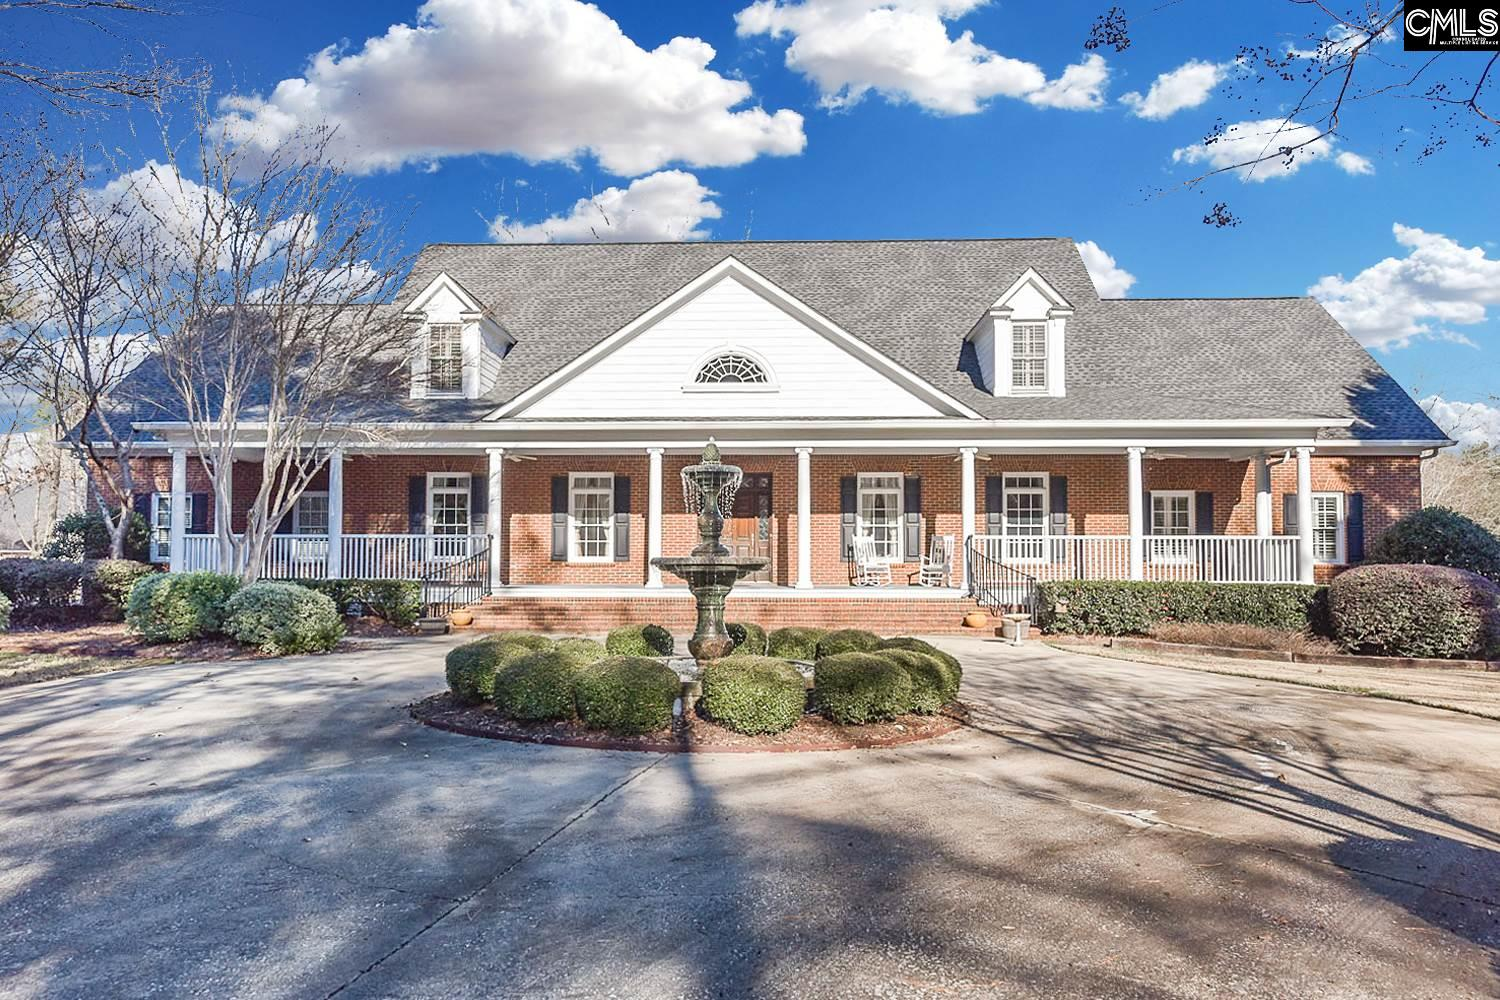 1244 Steeple Ridge Irmo, SC 29063